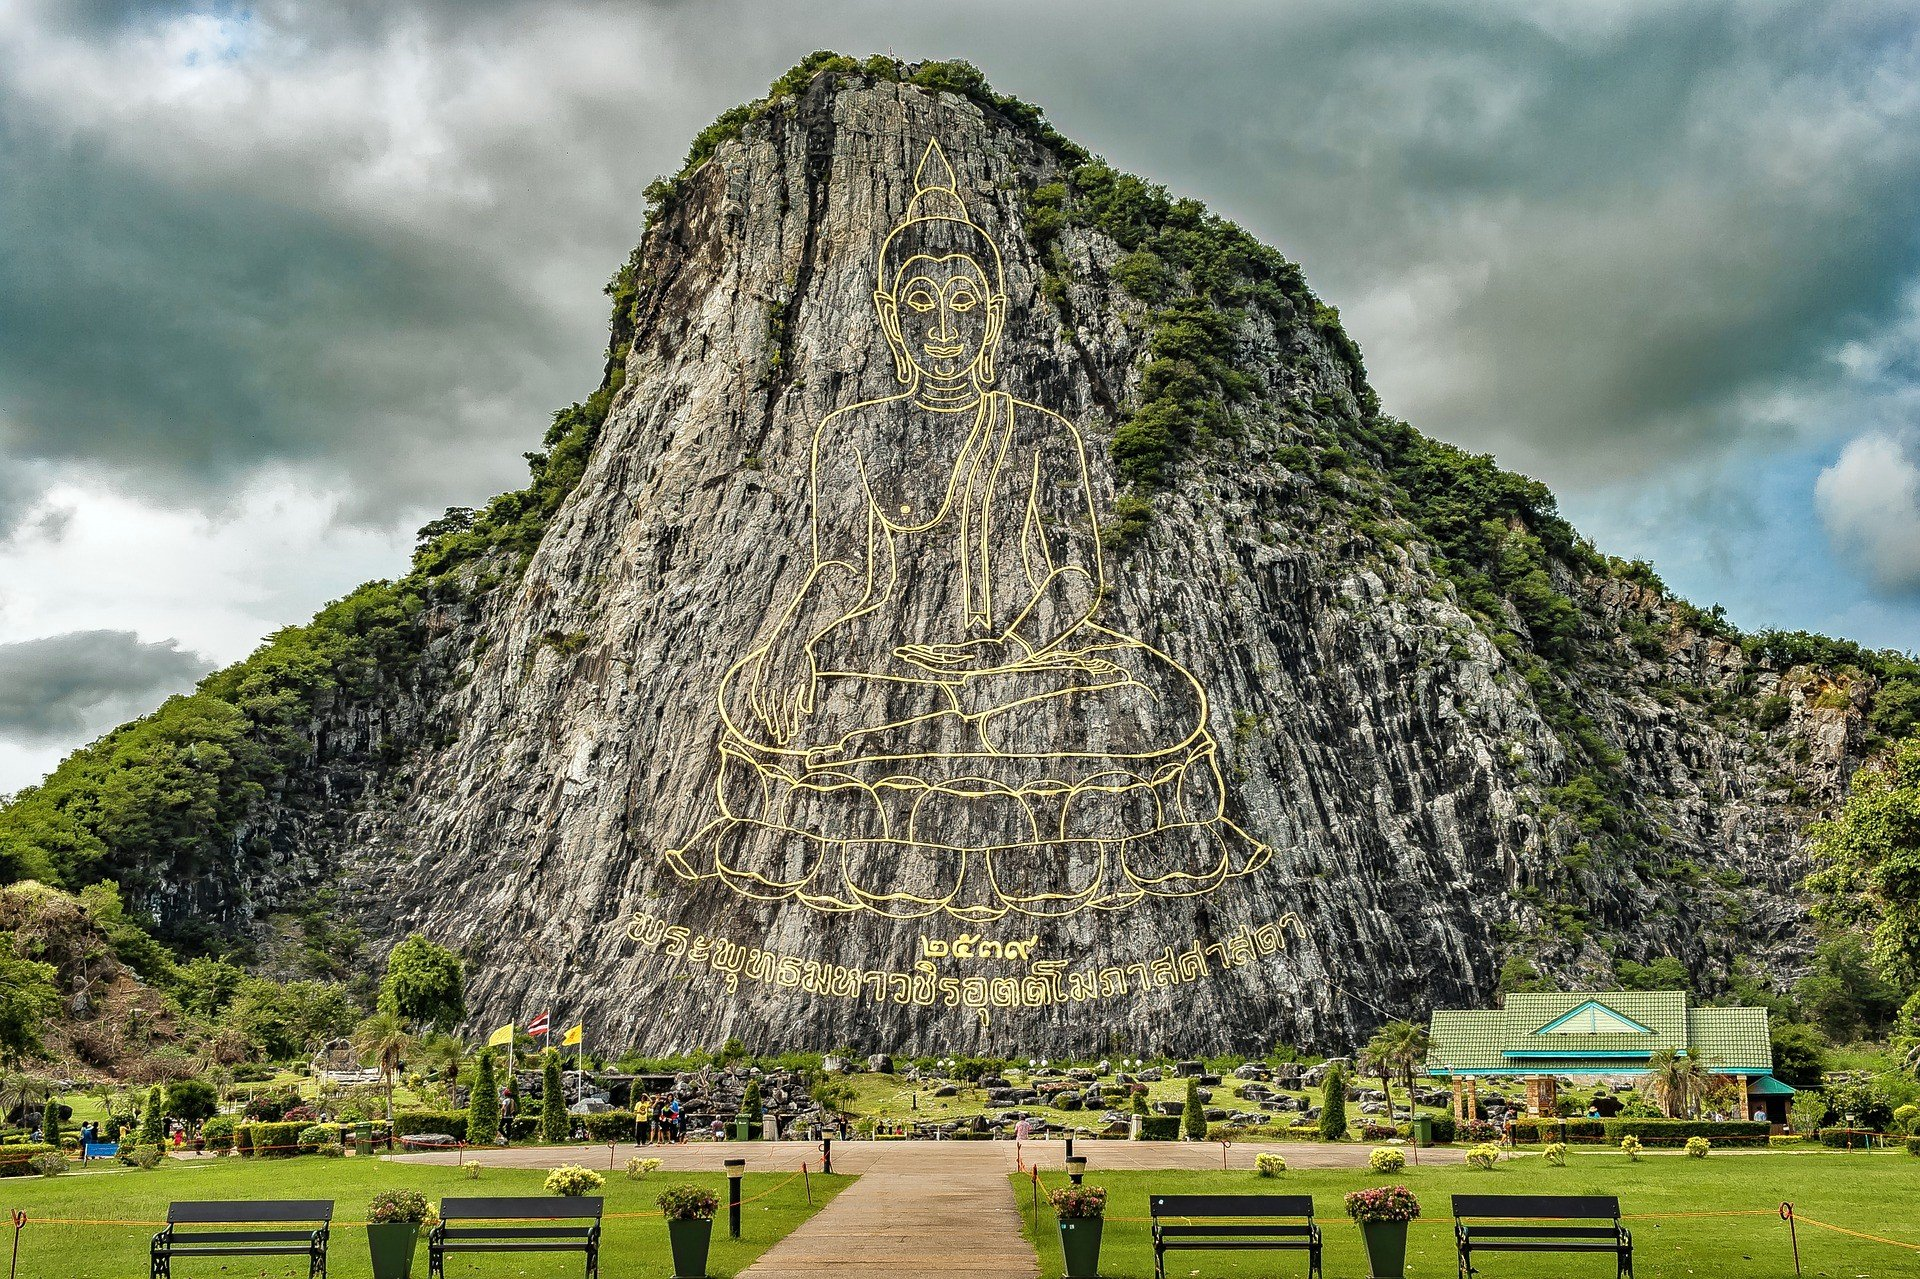 Buddha Mountain in Pattaya